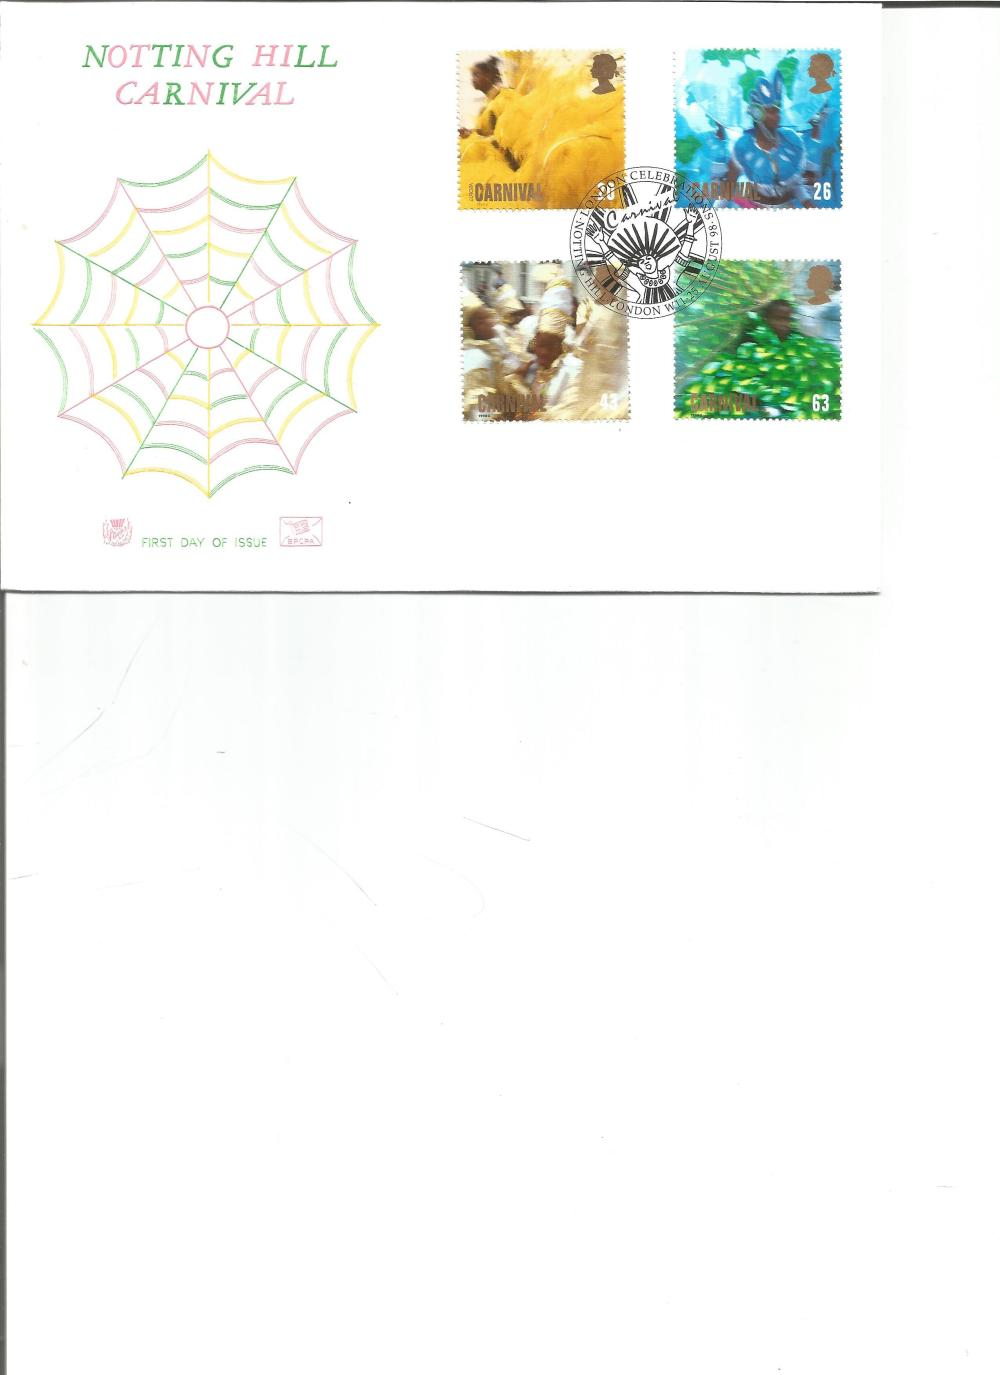 FDC Notting Hill Carnival c/w set of four stamps PM Celebrations, Notting Hill, London W11, 25TH